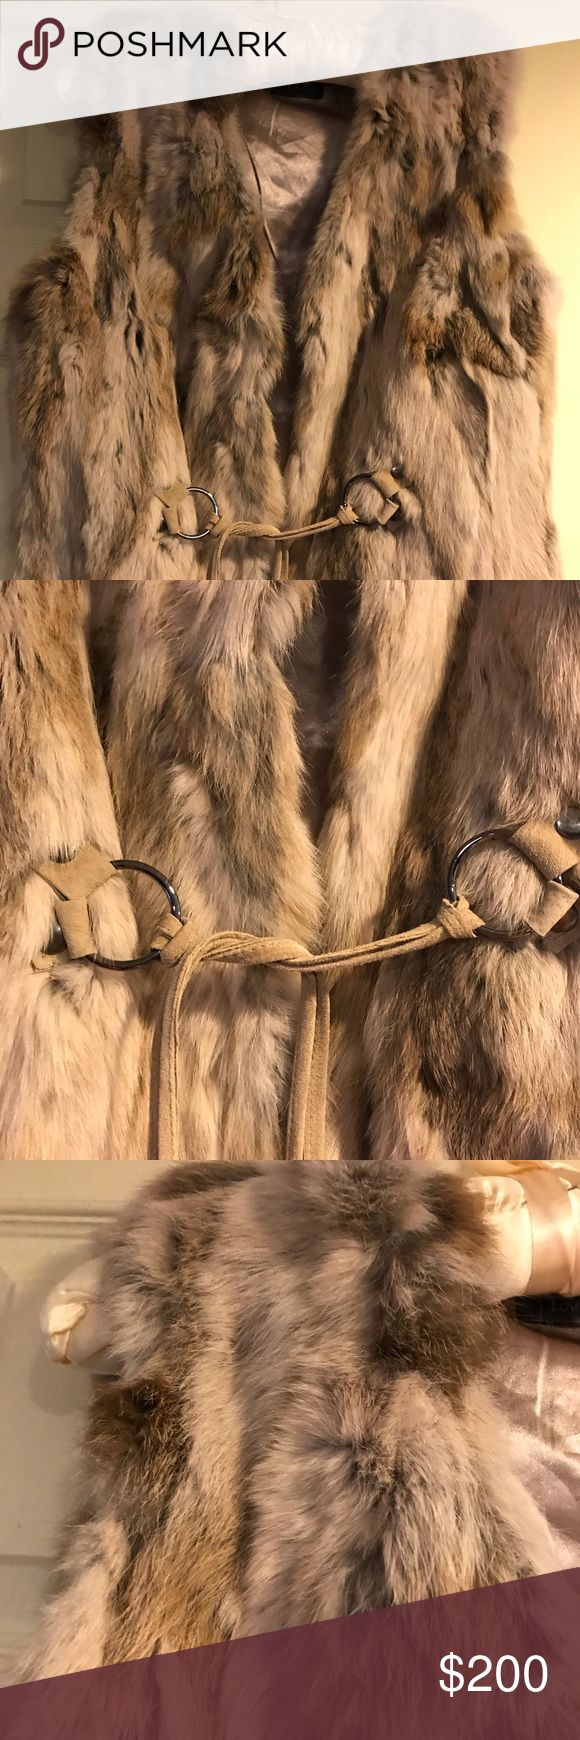 Real Fur Vest Soft and light Vest, in makes you feel amazing in any weather, my pictures don't do the Vest Justice. It is brand new with tag, size runs smaller . Color is cream so it's lighter than pictures. The Fur is long Rabbit hair in front and back. Love Token Other